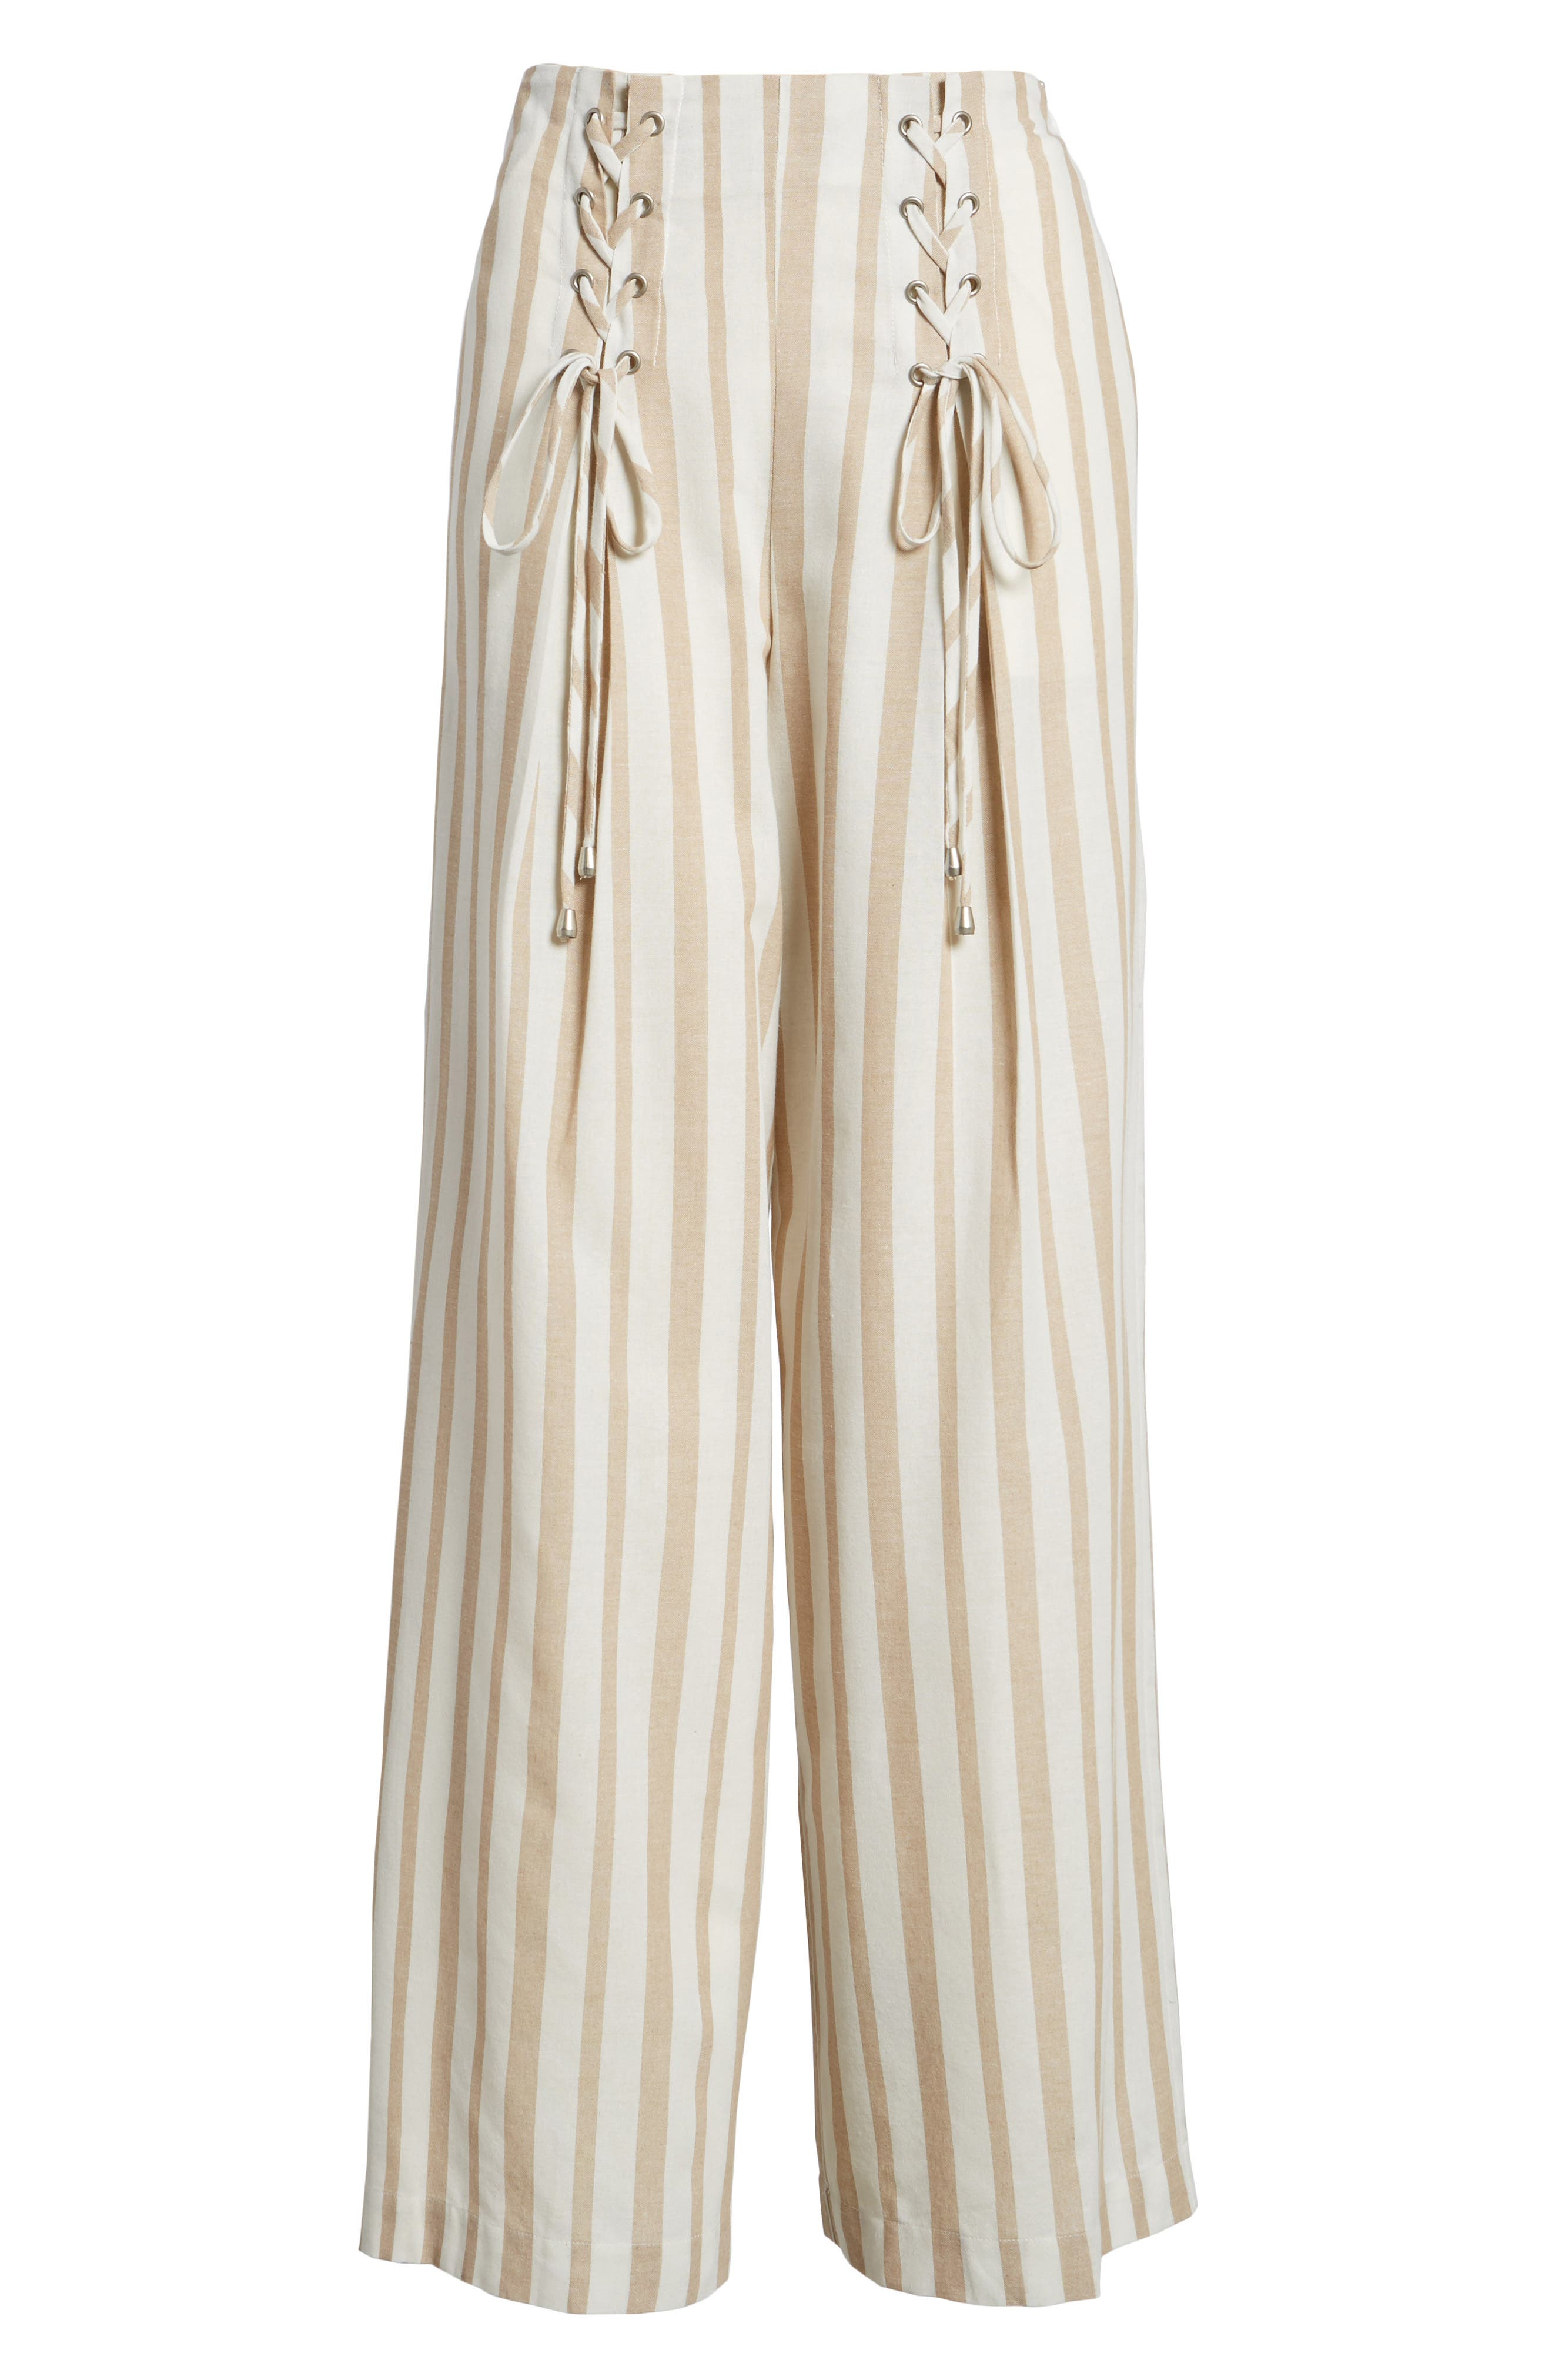 Chriselle x J.O.A. Lace-Up High Waist Wide Leg Pants,                             Alternate thumbnail 11, color,                             Sand Stripe